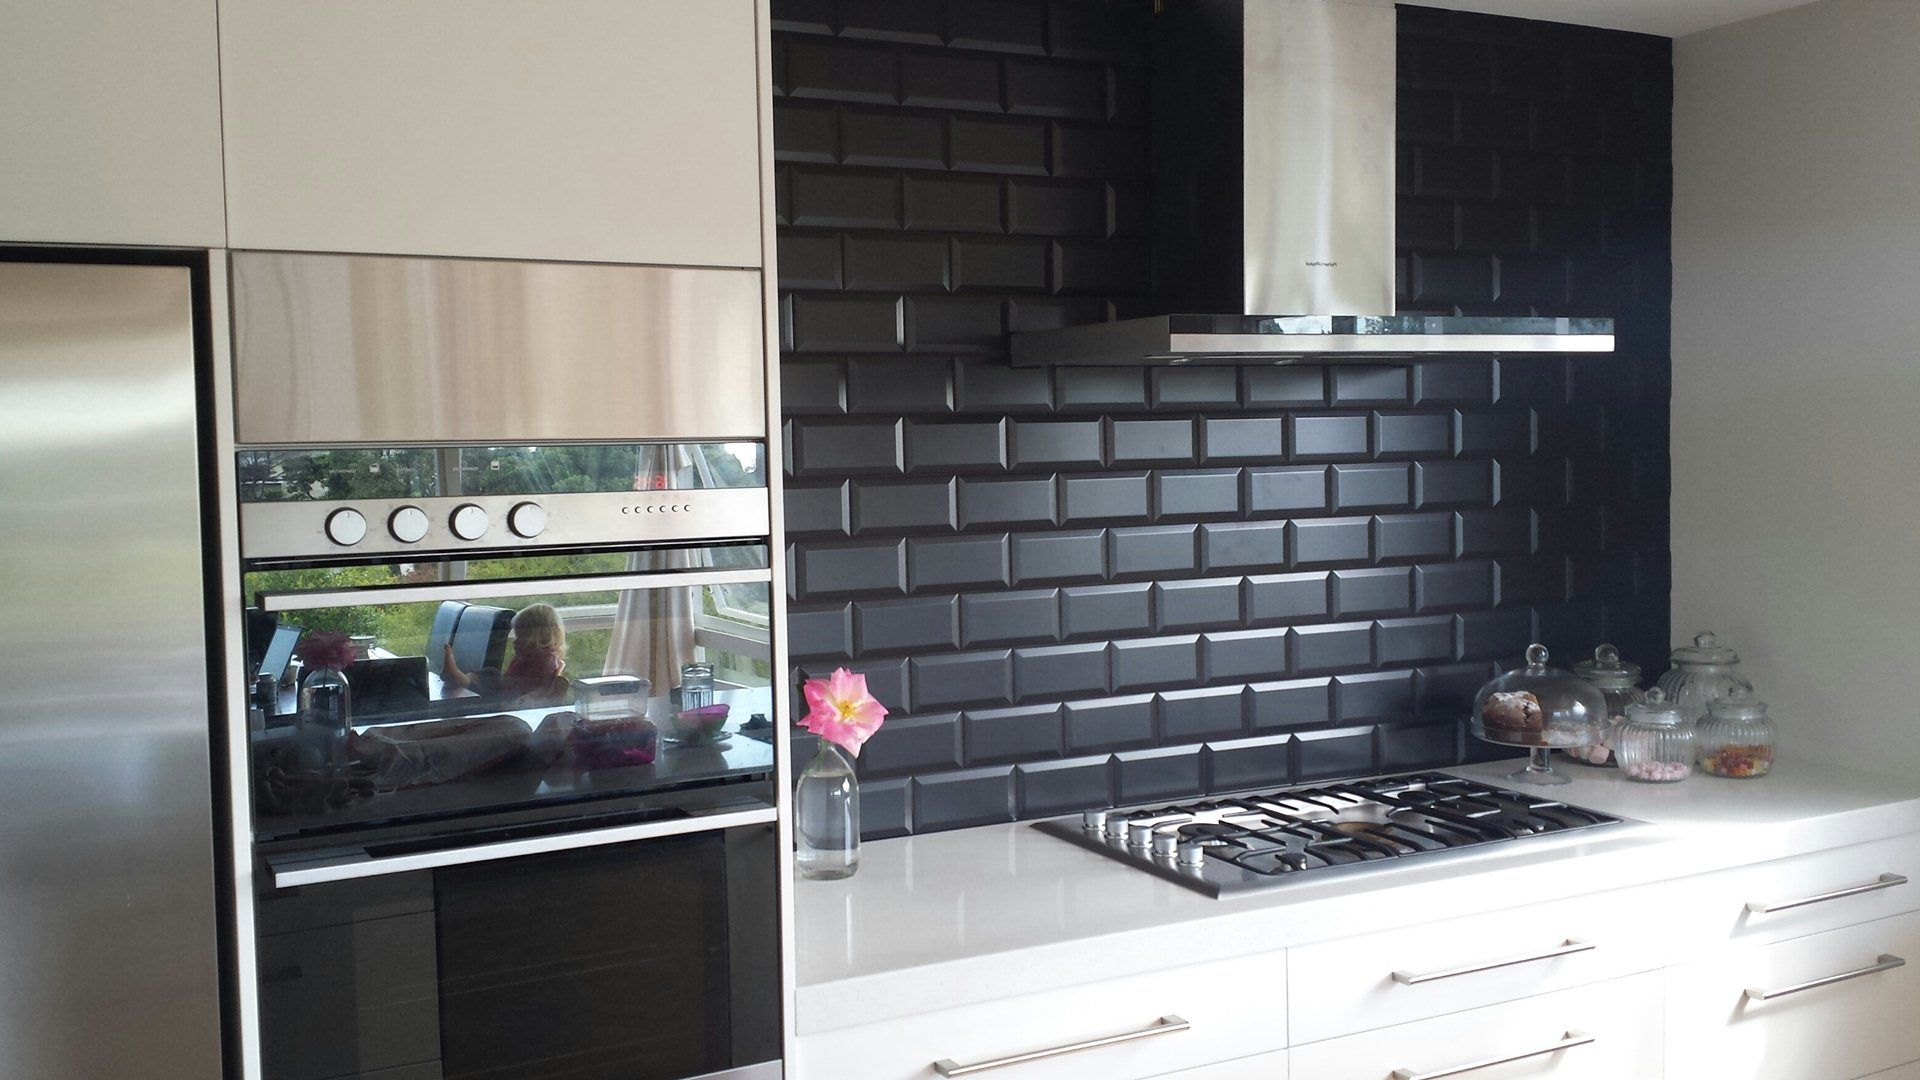 black kitchen tiles ideas image of black subway tile kitchen backsplash home 16434